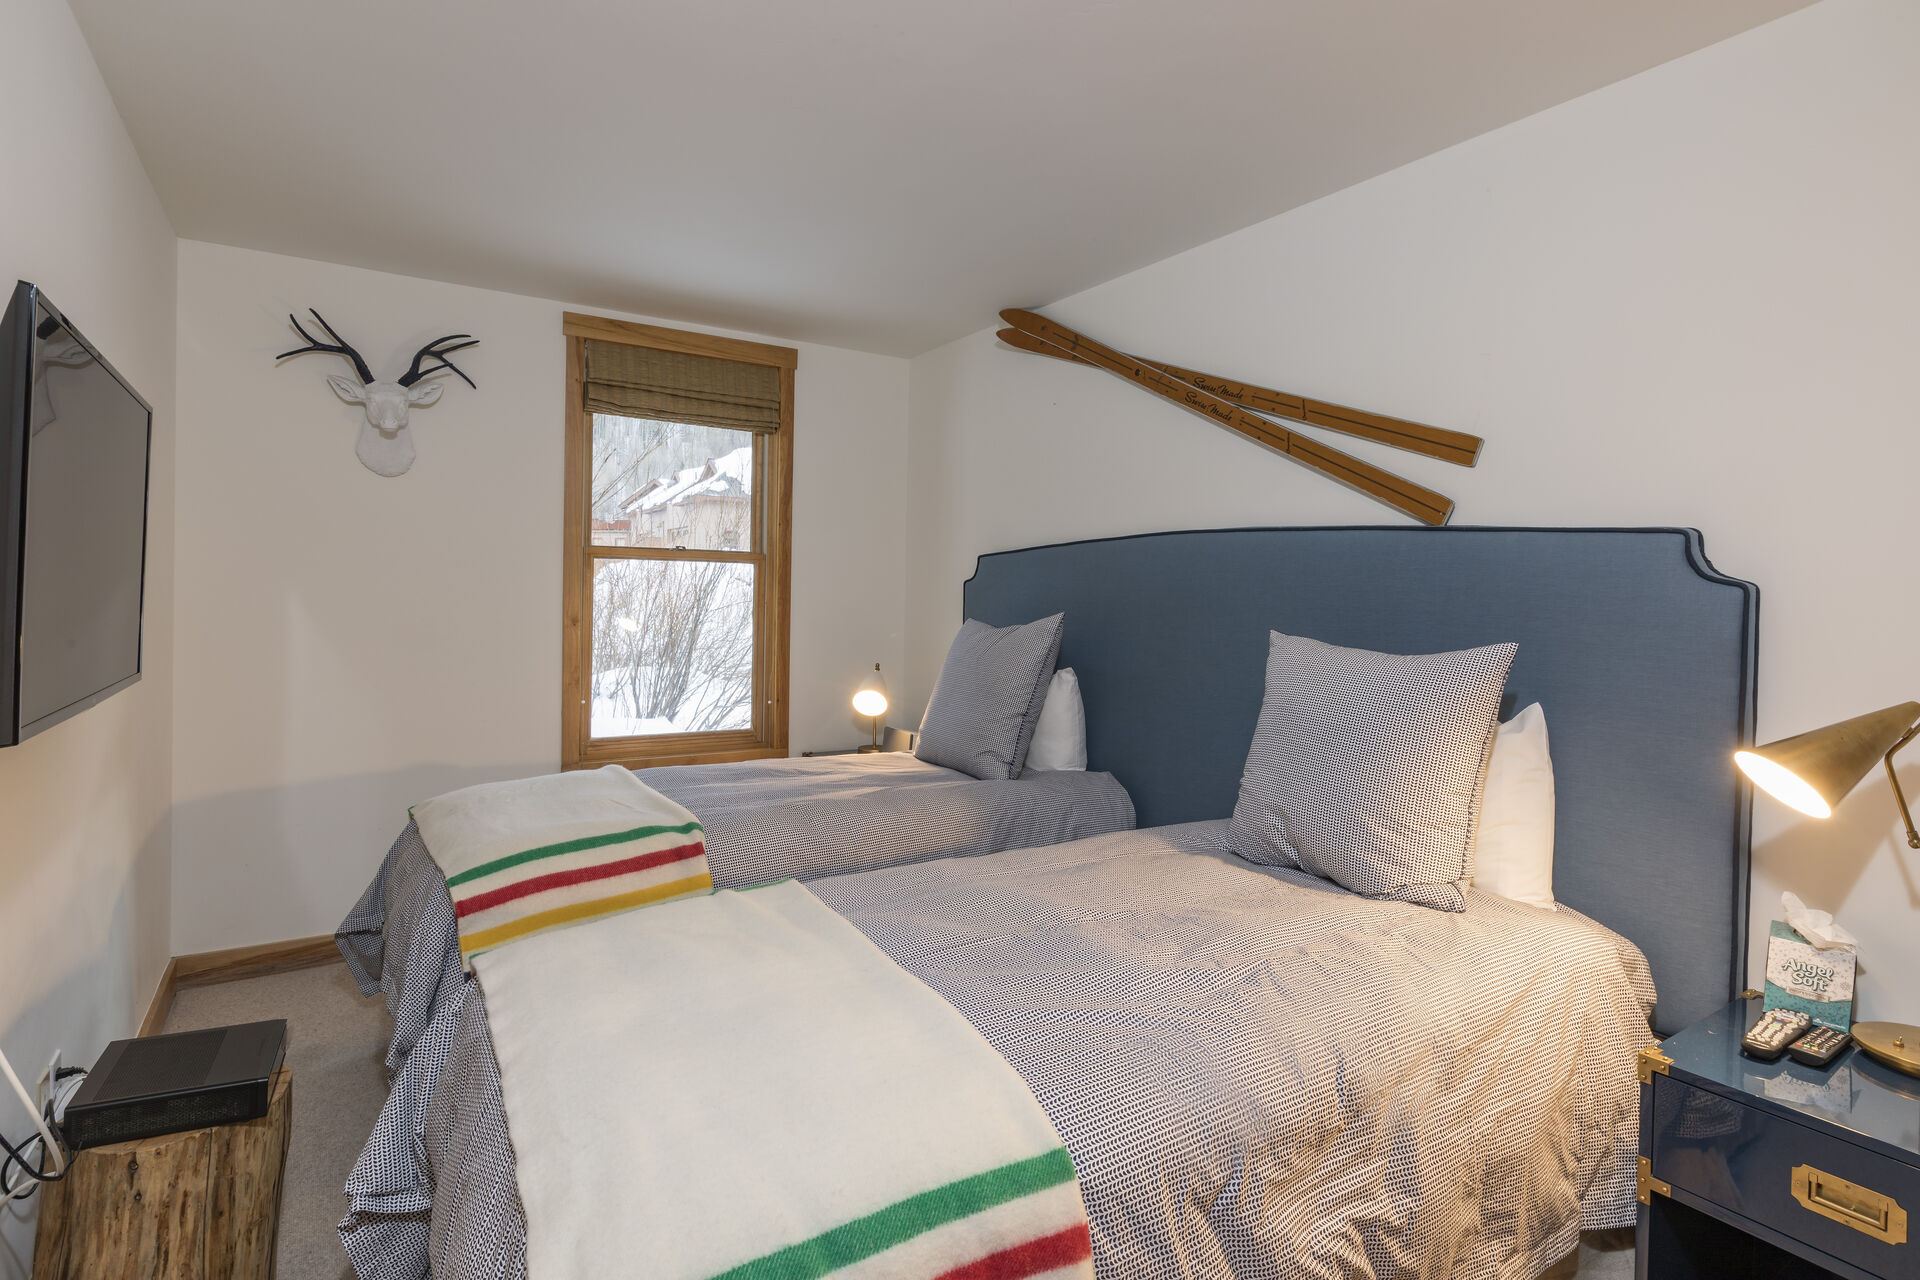 Two twin beds sharing a headboard in a bedroom across from a wall-mounted TV.